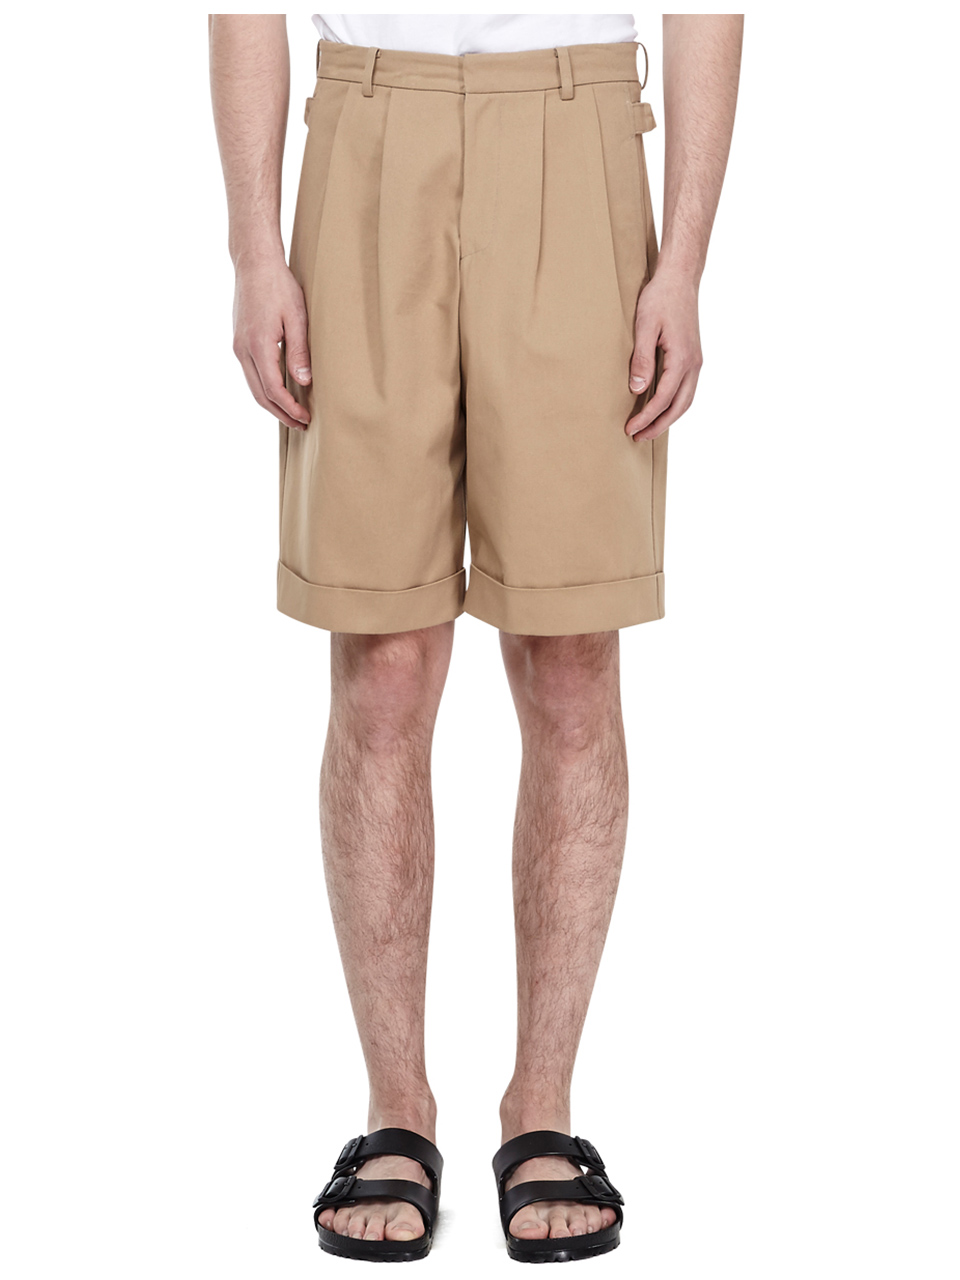 Two Tuck Wide Shorts - Baige